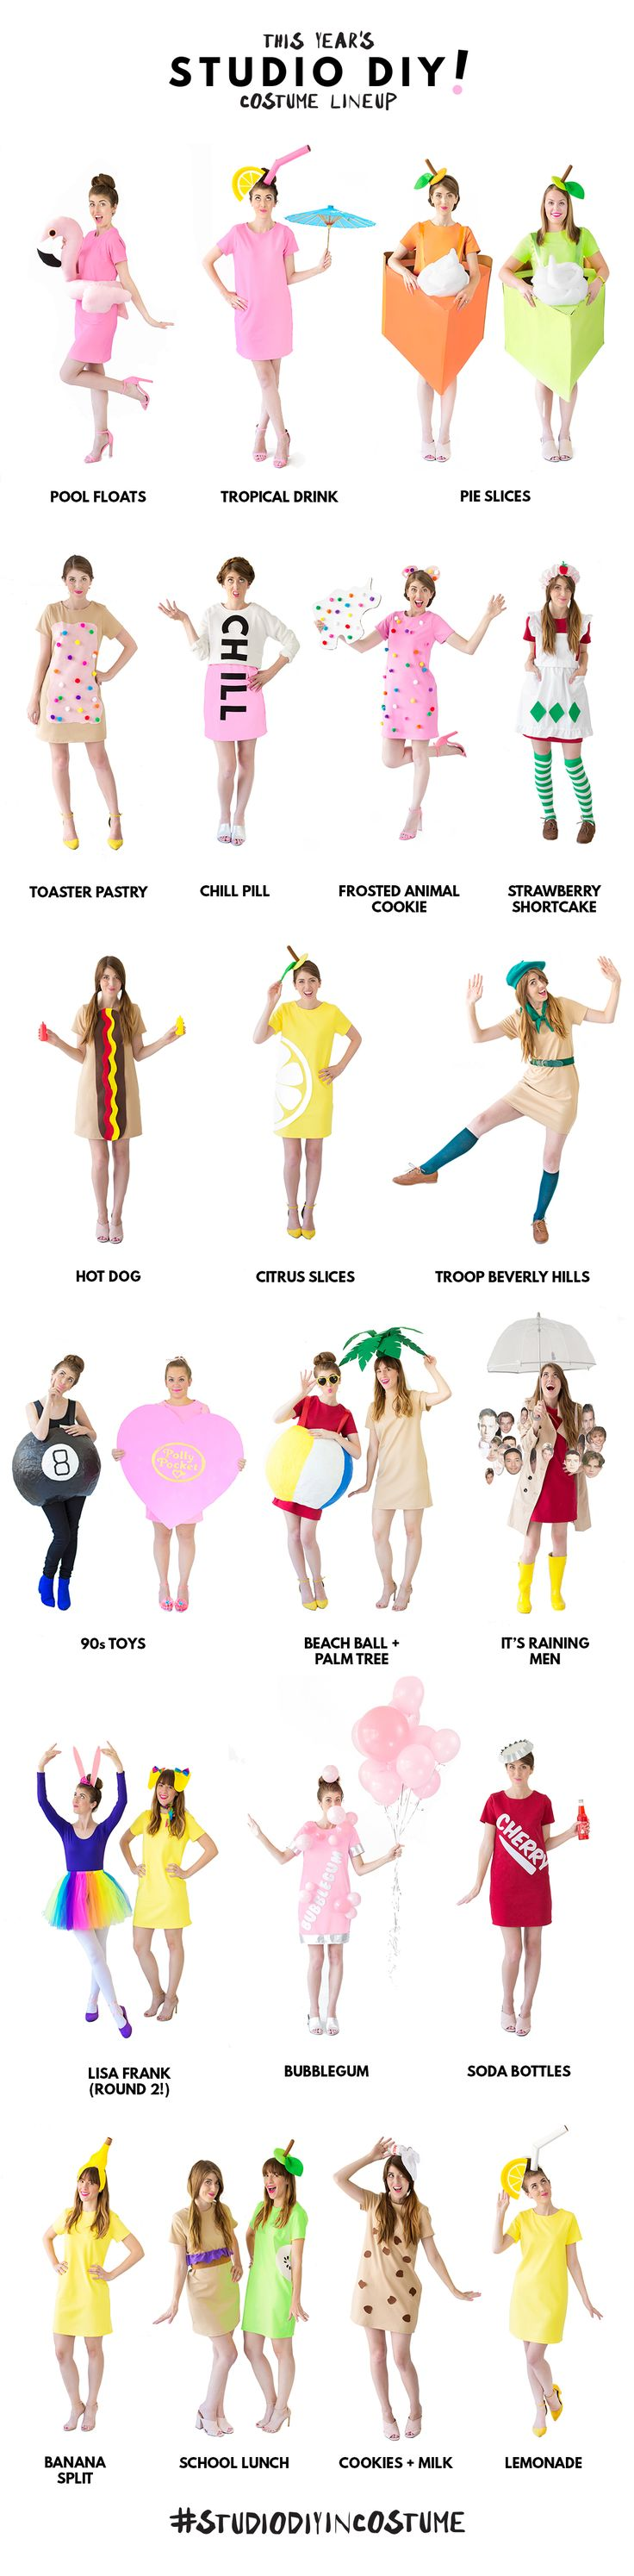 Studio DIY 2016 Costume Lineup are so fun!! #halloween #costumes #DIY